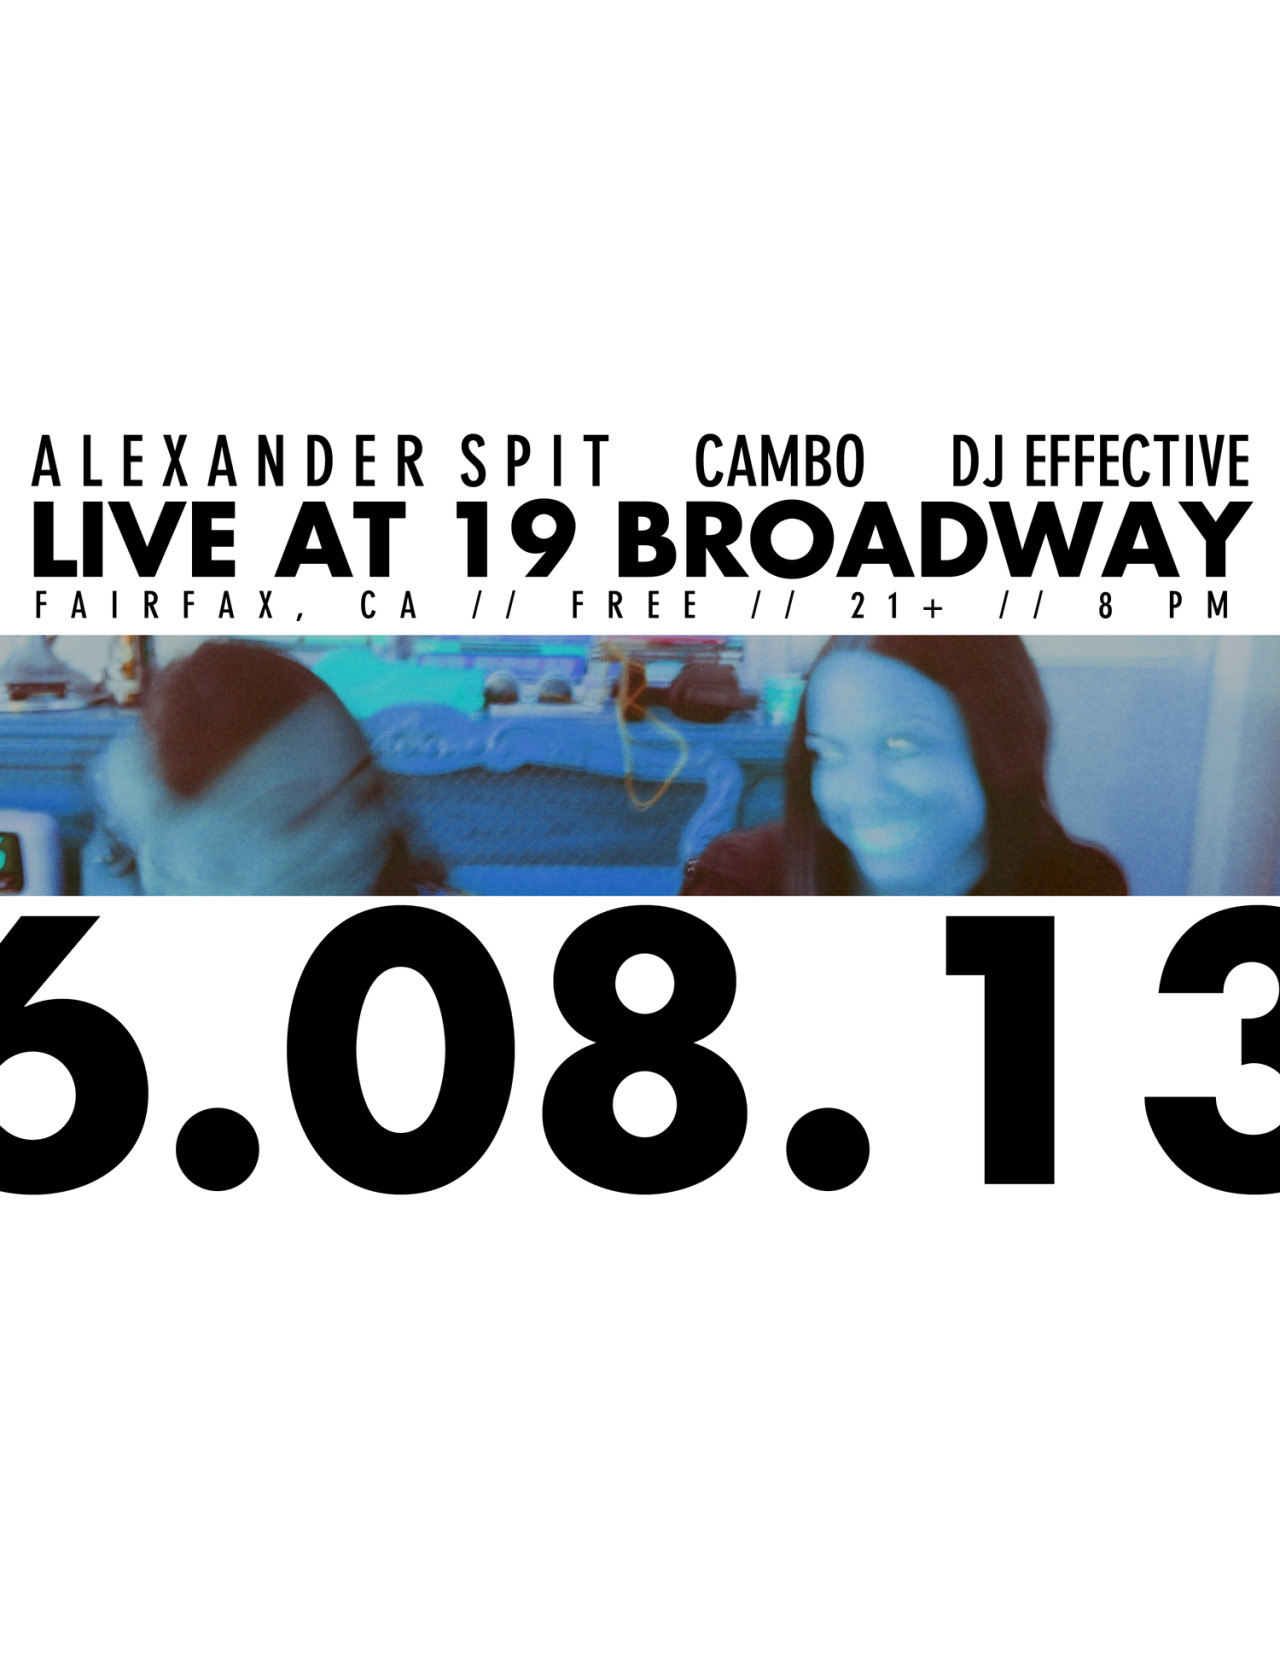 LIVE AT 19 BROADWAY. FAIRFAX, CA. 06.08.13. ALSO PERFORMANCES BY CAMBO & DJ EFFECTIVE. A FREE SHOW. DOORS OPEN AT 8 PM. SHOW STARTS AT 9 PM. 21+ (OR GET YOUR FAKE ID ASAP). MY FIRST SHOW IN MARIN COUNTY IN YEARS. I HOPE TO SEE A LOT OF FAMILIAR FACES AND ENEMIES. POSSE UP AND MOBB DEEP. DON'T GET ARRESTED BEFORE YOU GET IN. GONNA TEST OUT NEW MATERIAL LIVE. SEE YOU THERE.